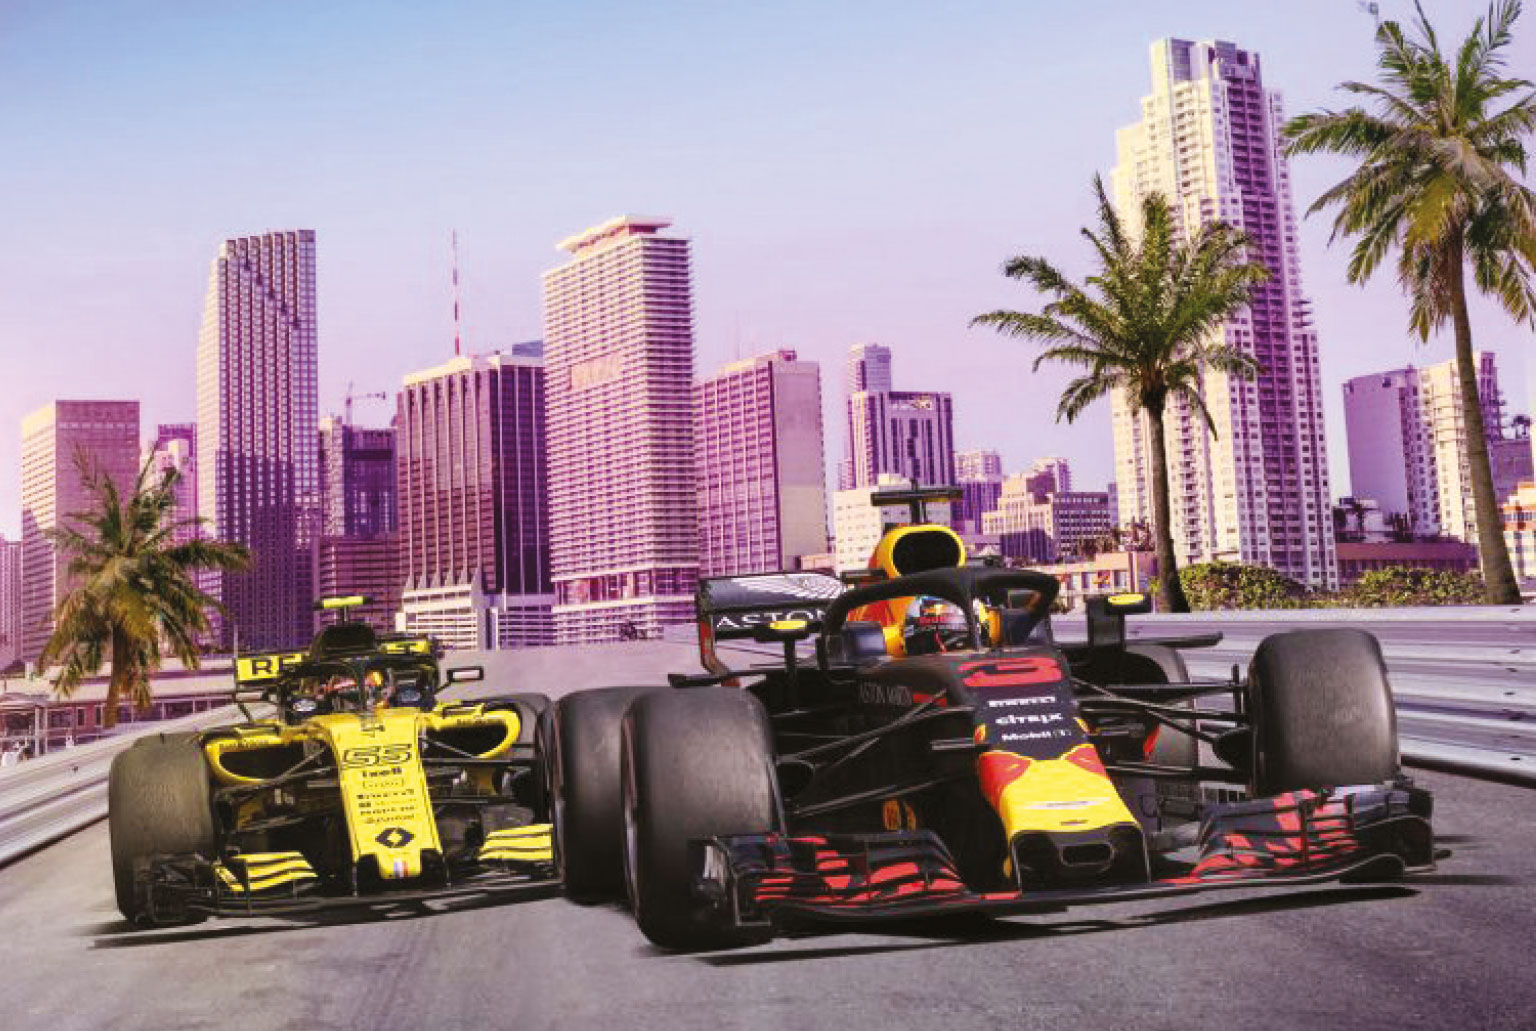 Liberty wants a race in Miami, but has hit trouble